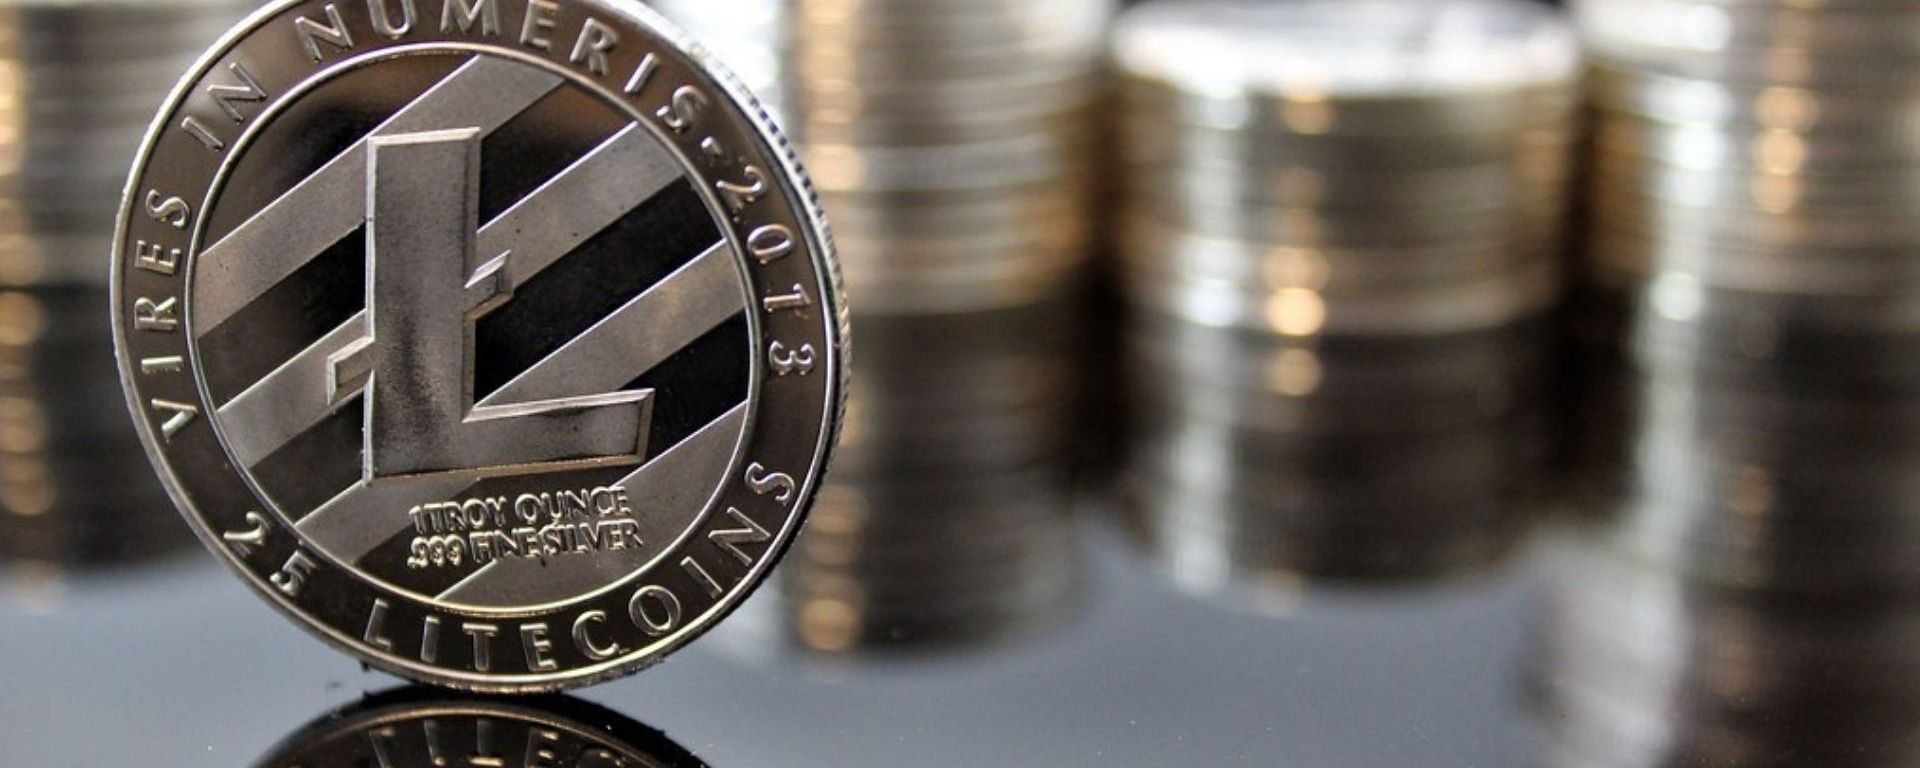 A photo of a silver coin with an L on it with diagonal lines behind it stands on its side. The coin has the text: Veres In Numeris 2013 – 25 Litecoins. In the background is a blurred vision of other silver coins stacked onto one another